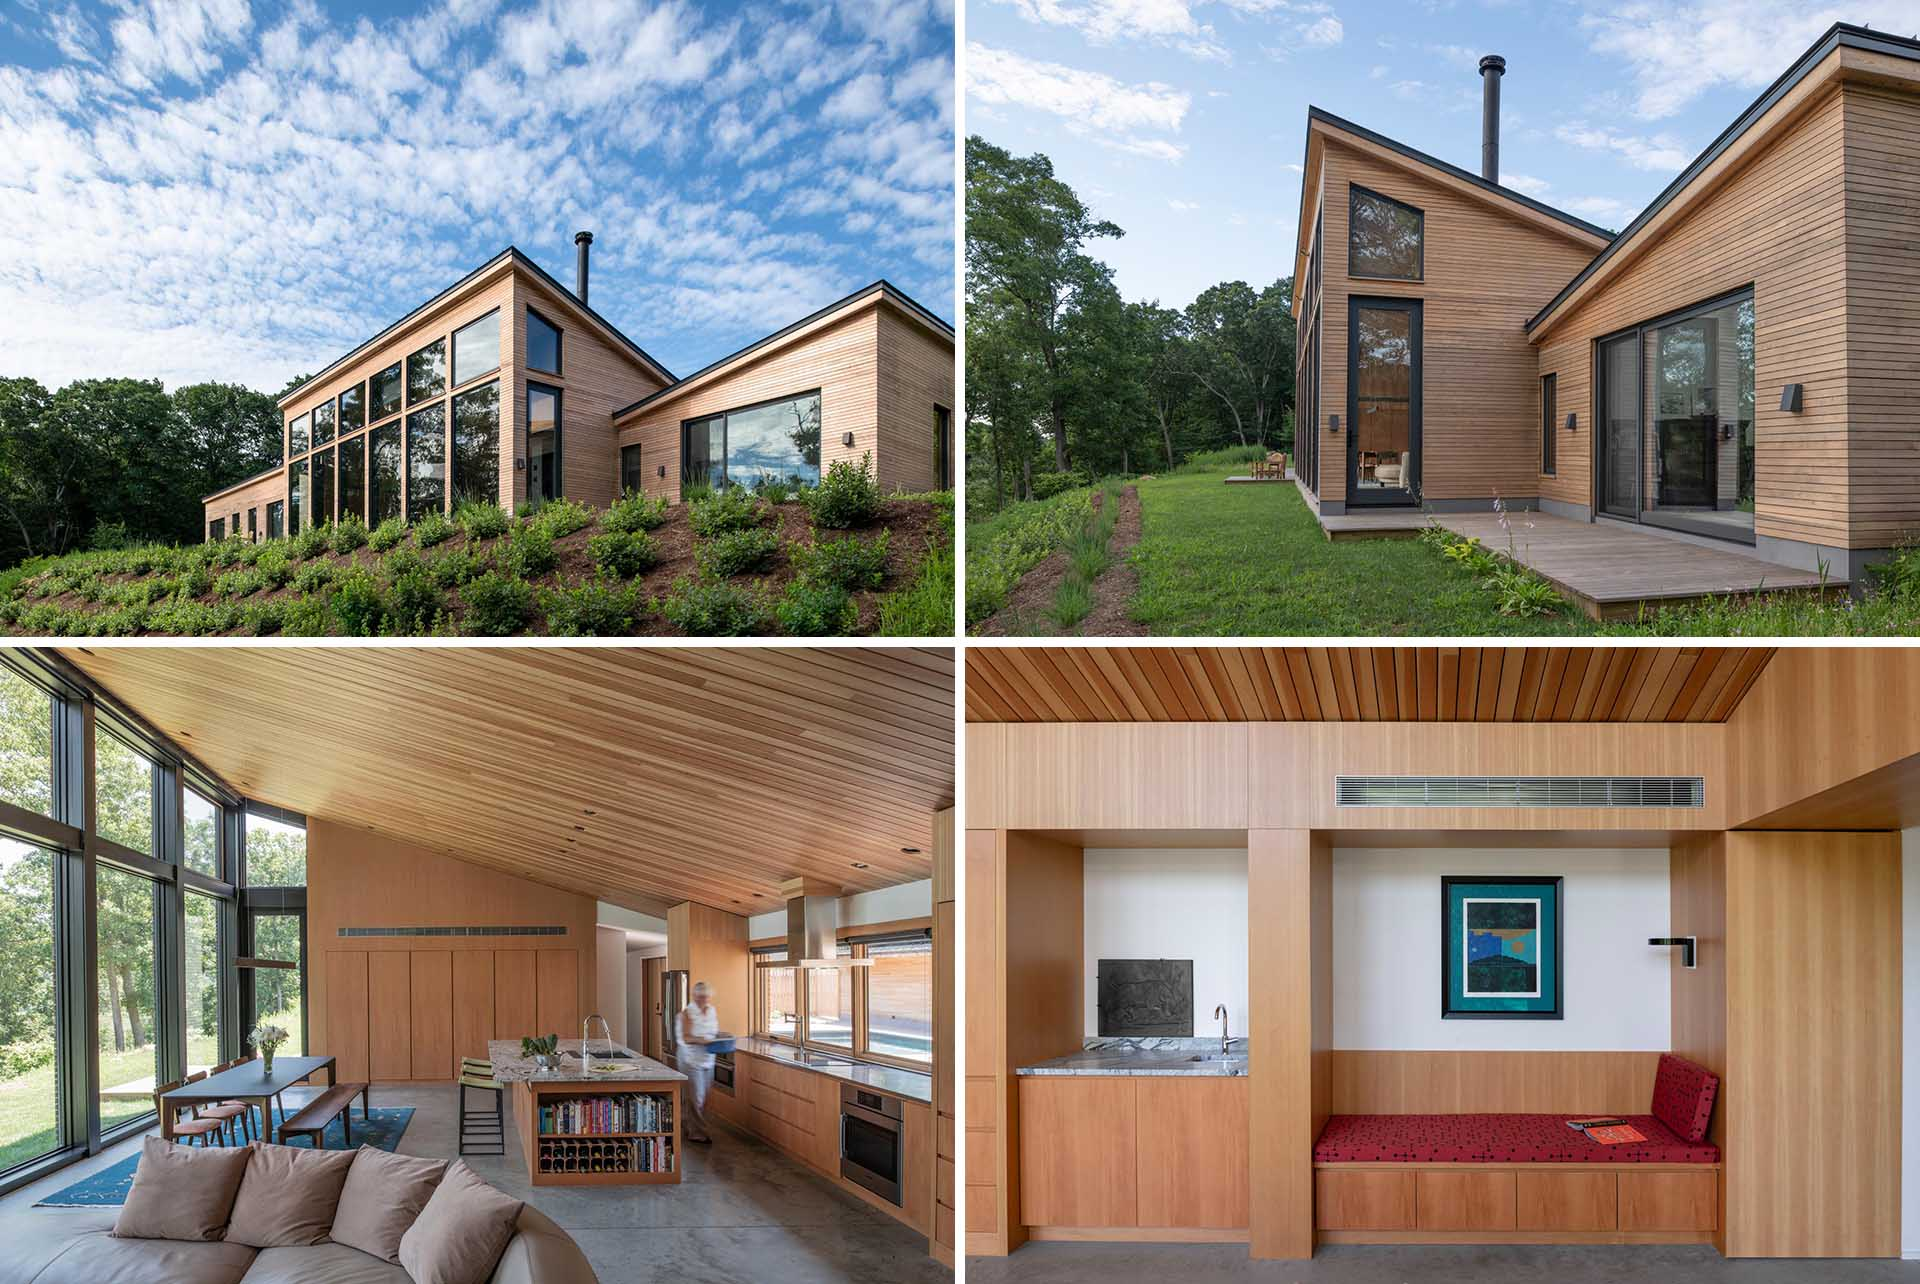 The architects built this modern home with an aesthetic focused natural materials that need no finishing or maintenance. They selected only rot-resistant wood that can be used naturally with no applied stain or seal.